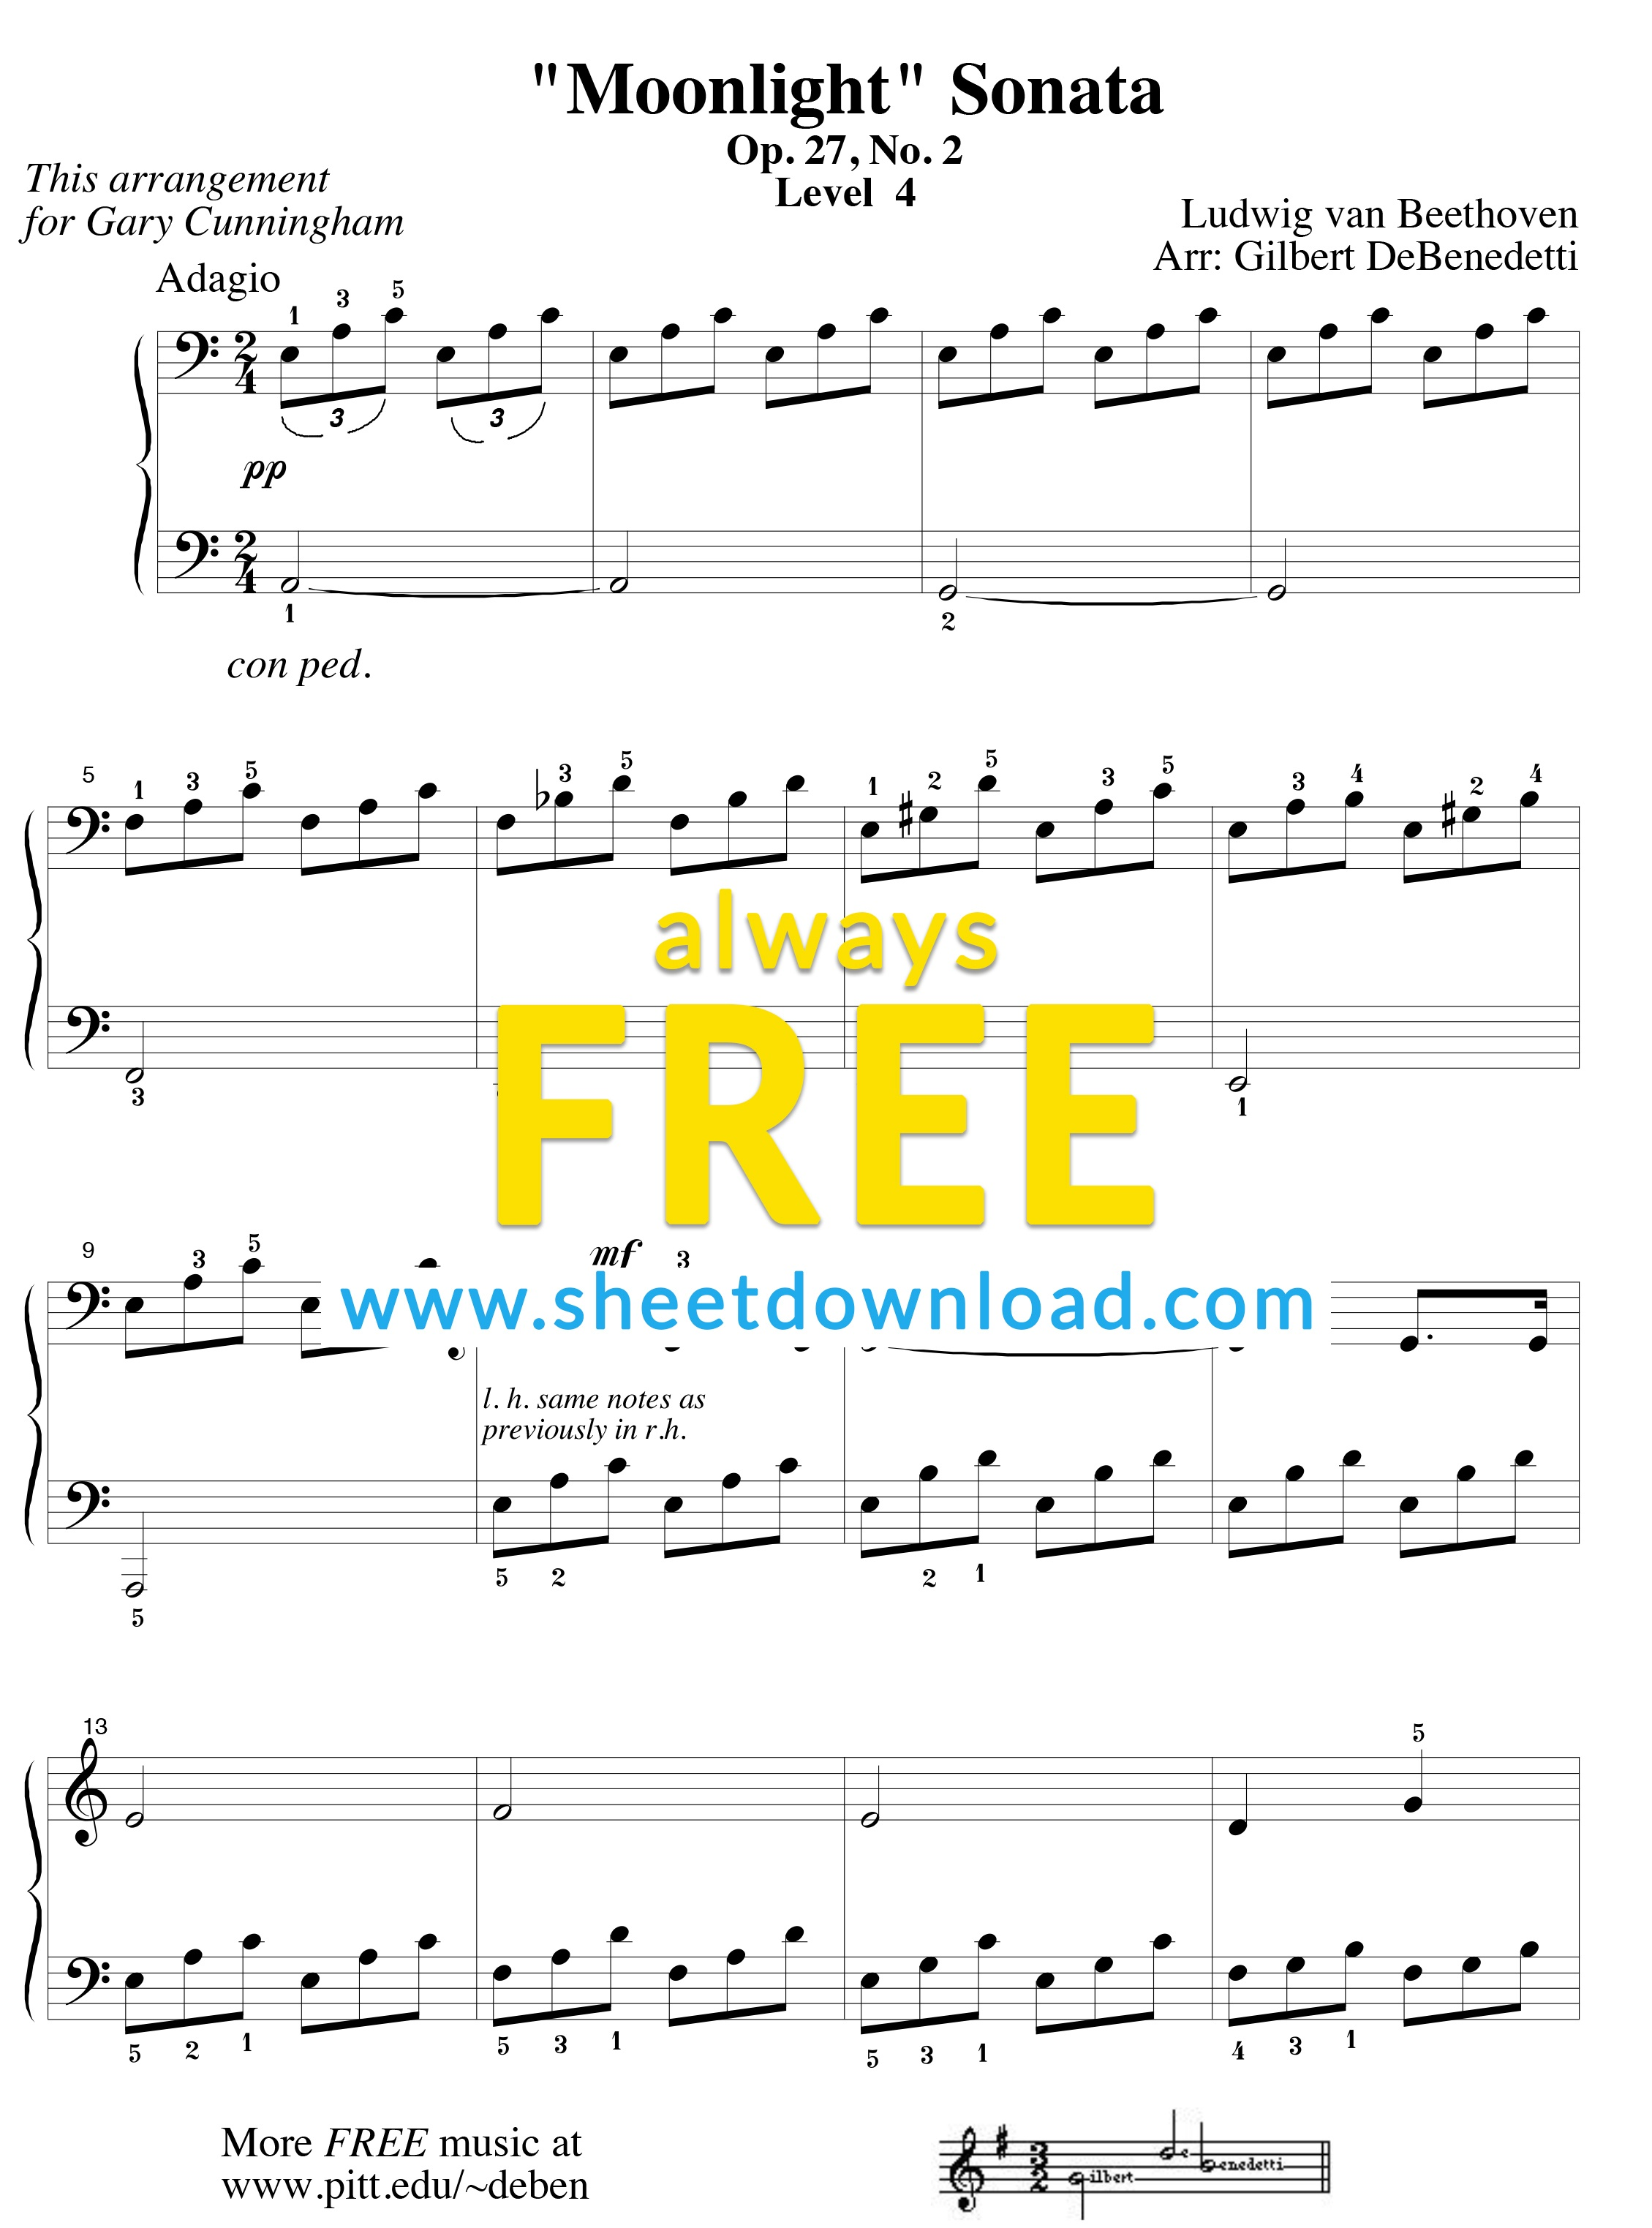 Top 100 Popular Piano Sheets Downloaded From Sheetdownload - Free Printable Sheet Music For Piano Beginners Popular Songs